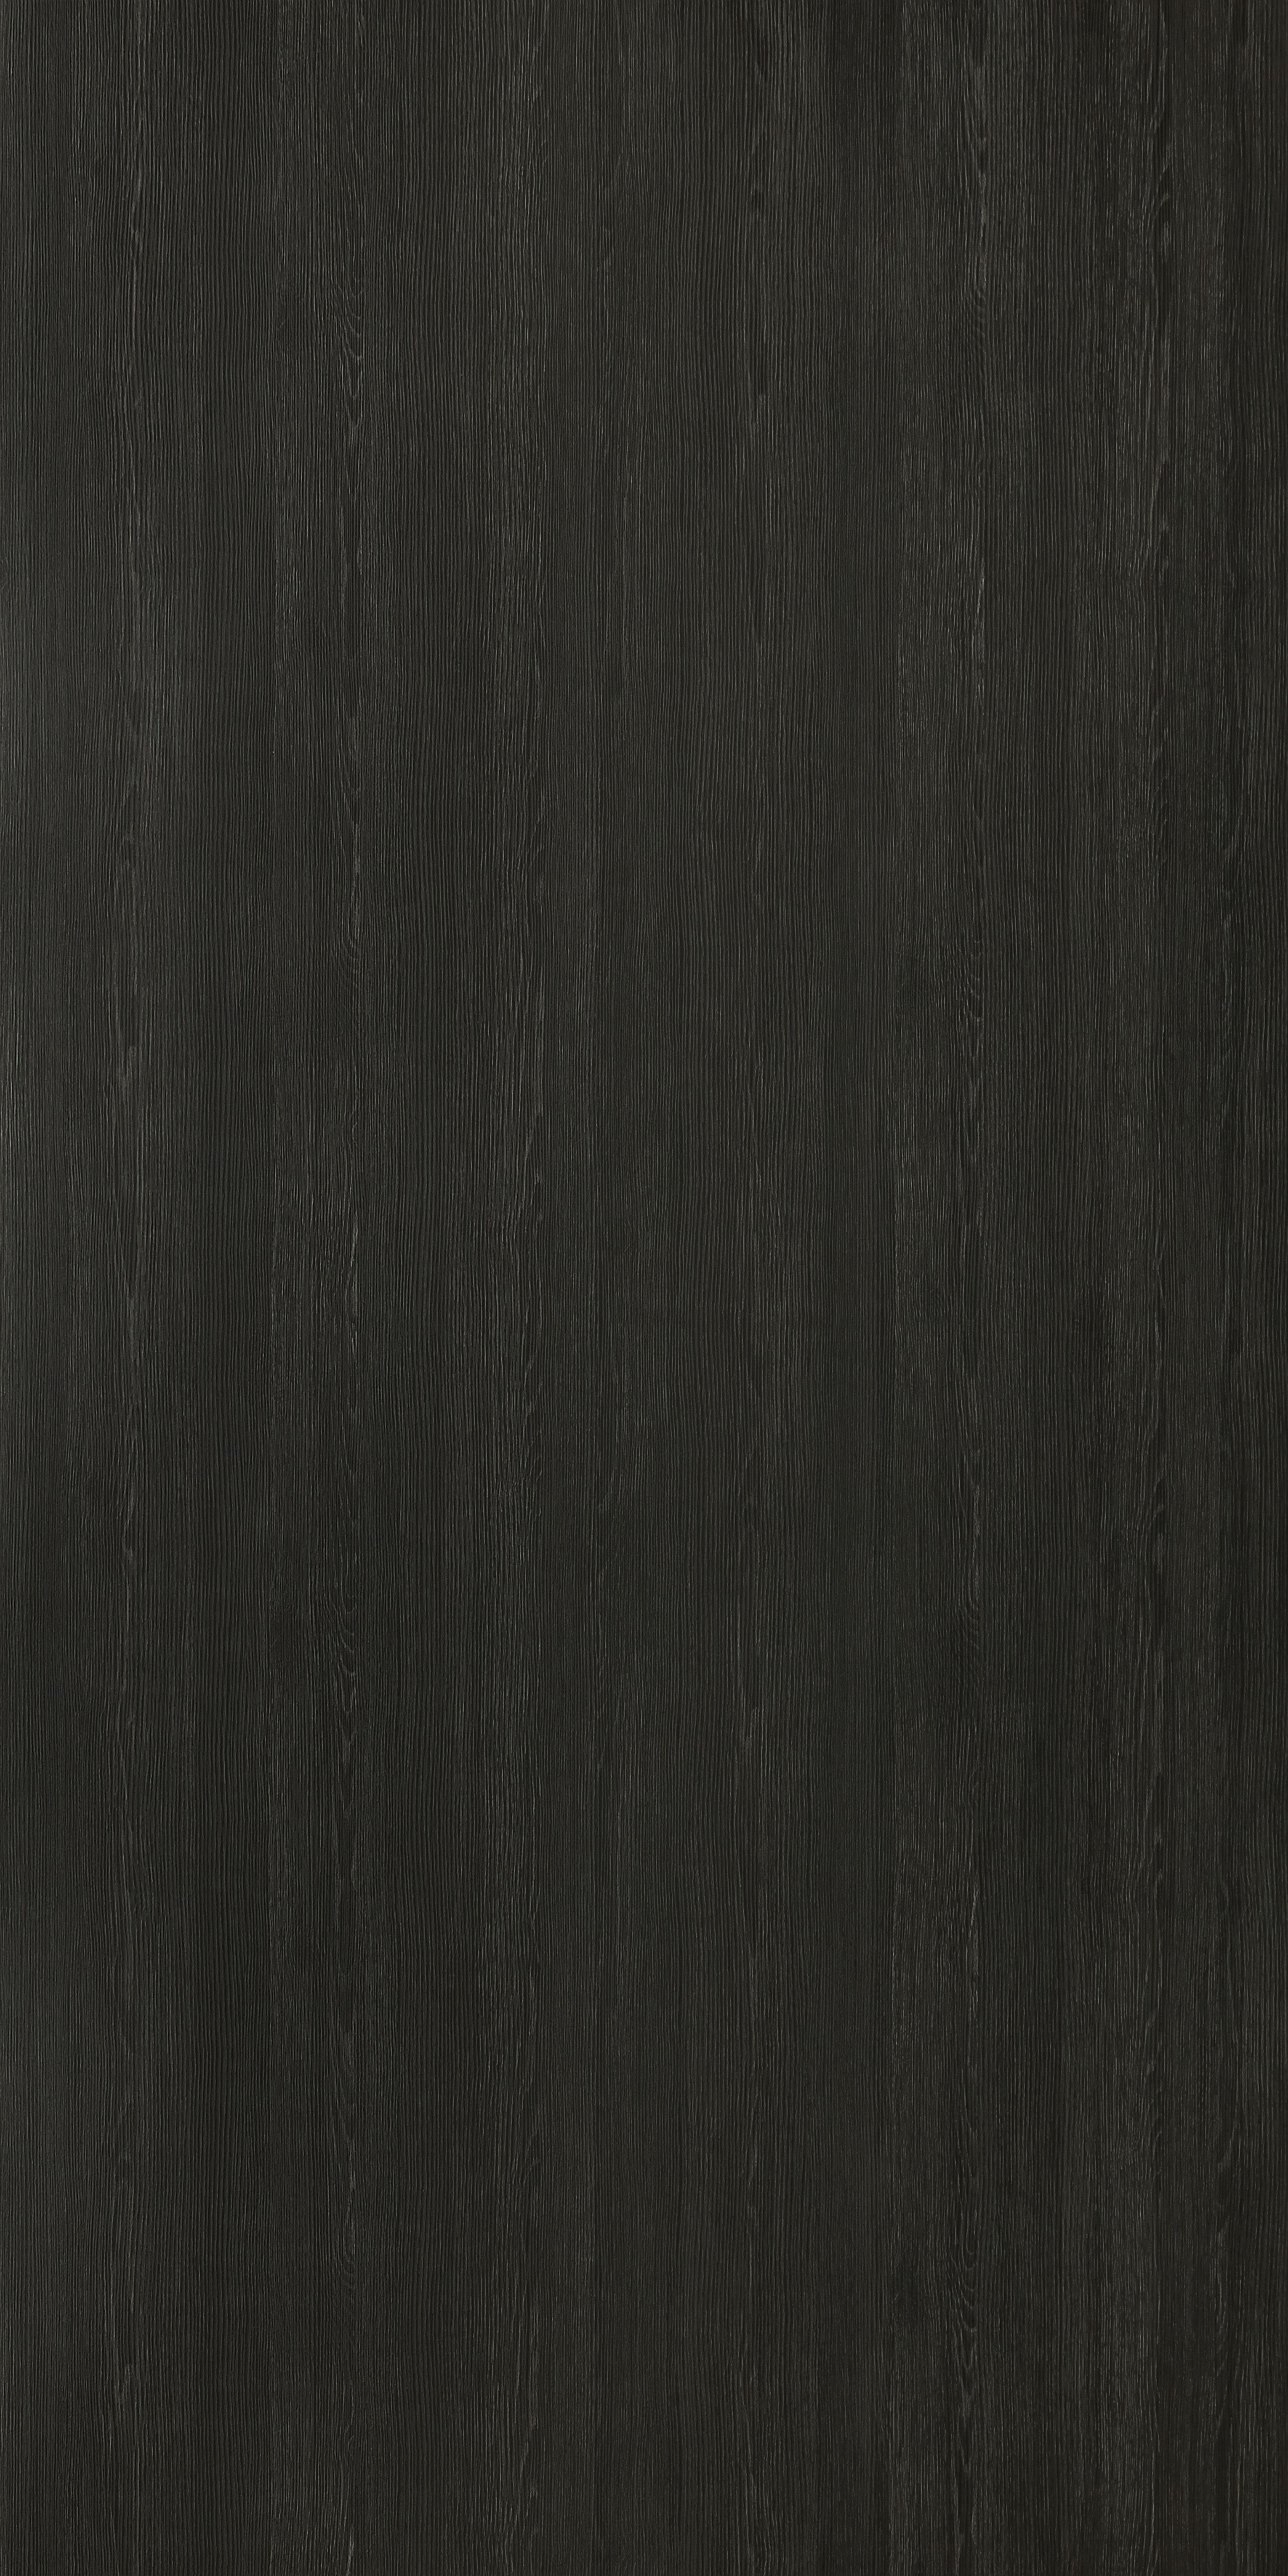 Edl rovere carbone materials pinterest for Texture rovere